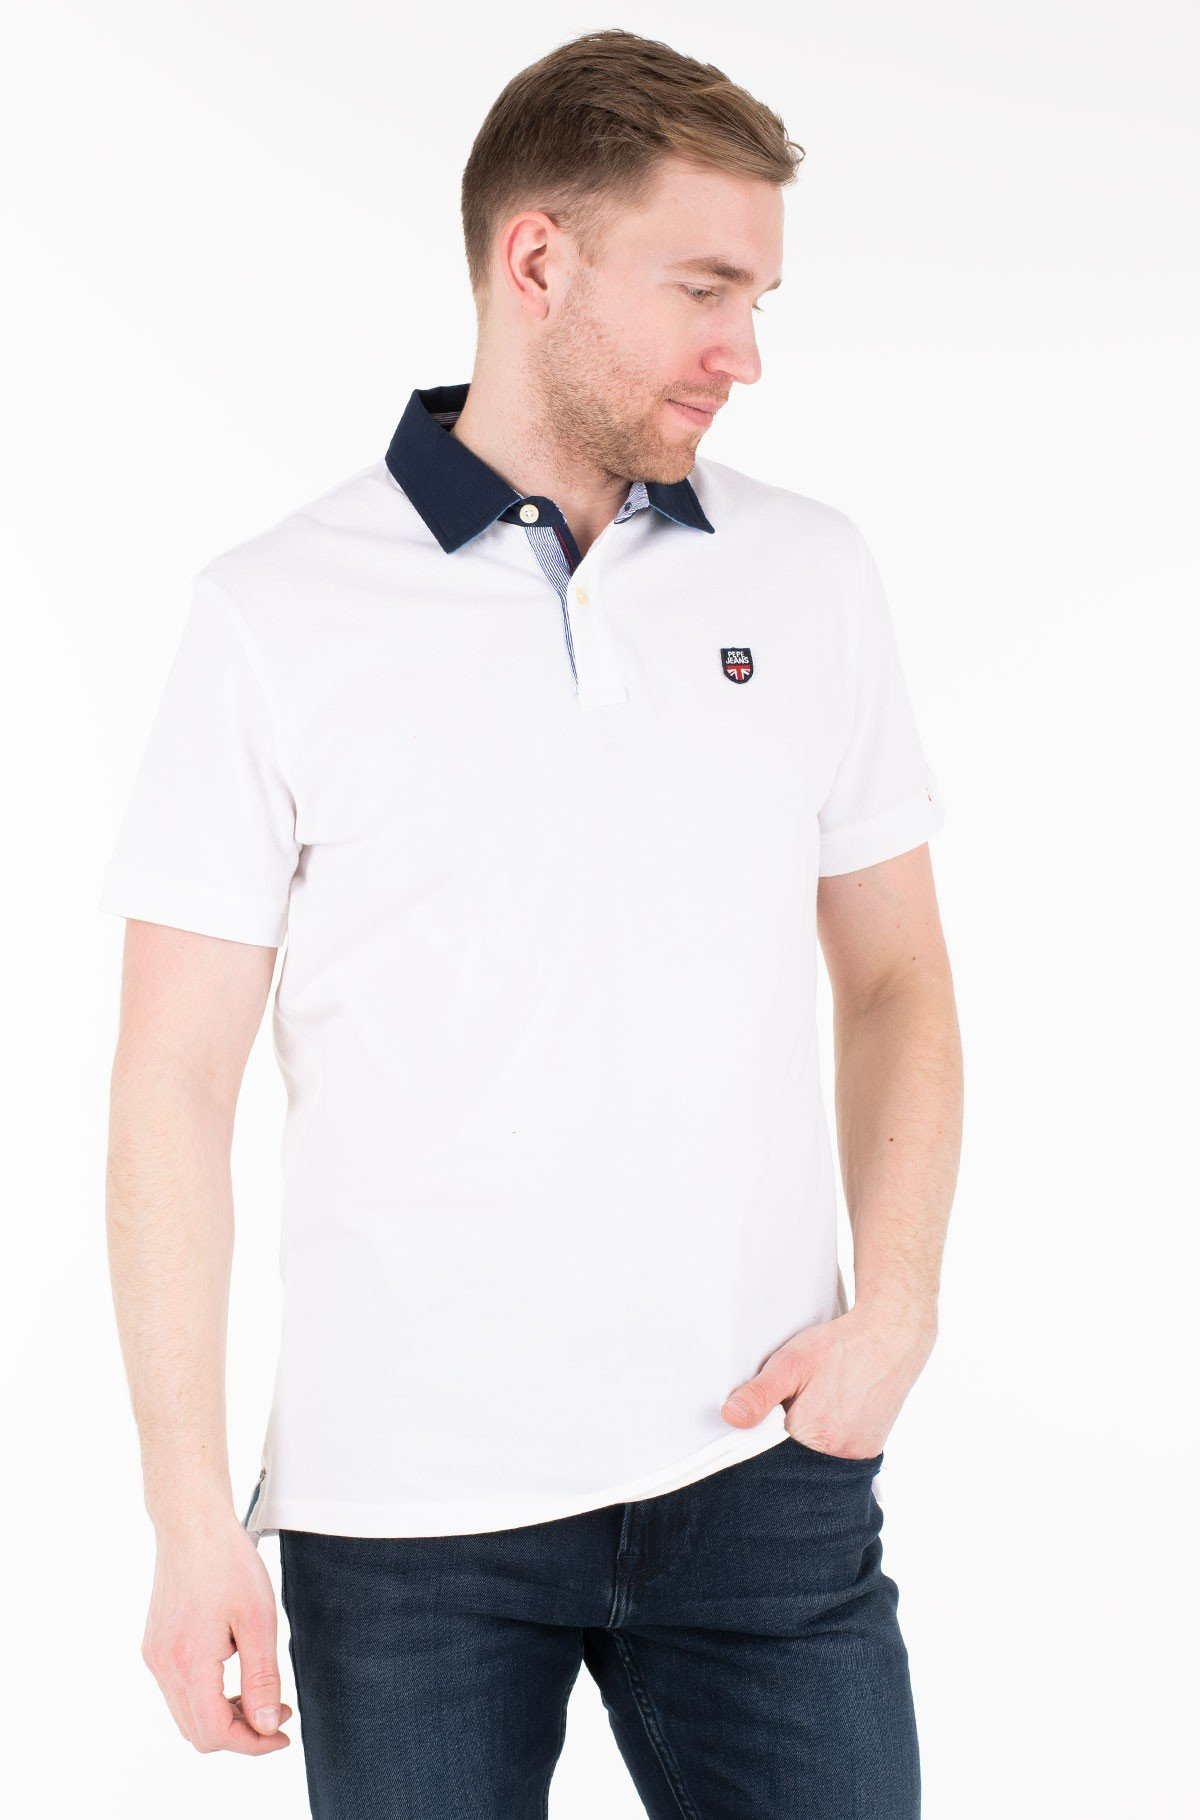 Polo PETER/PM541208-full-1